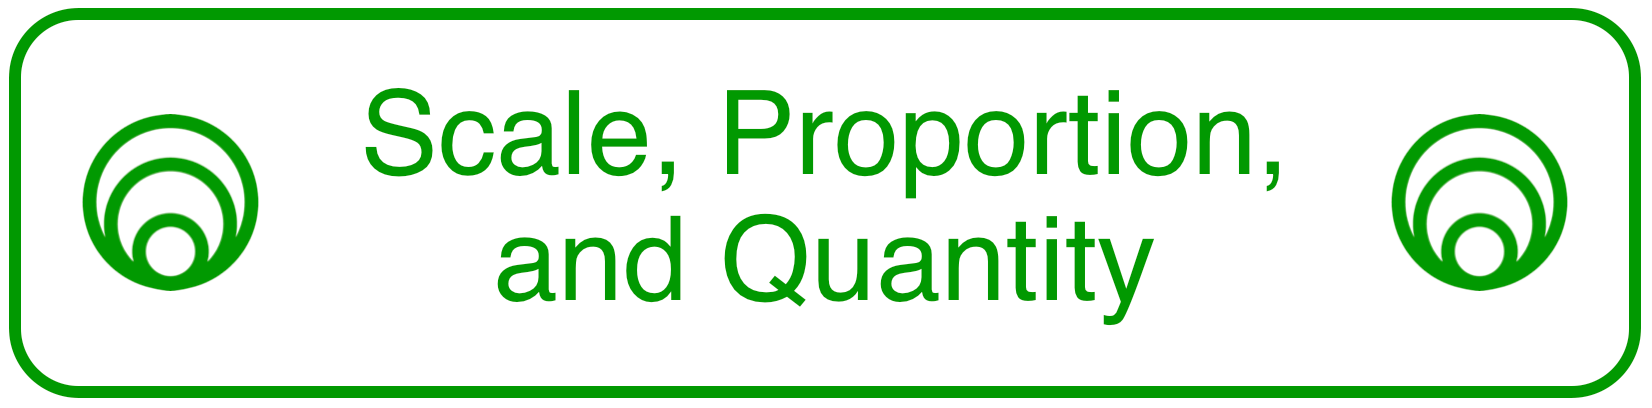 Scale__Propoption__and_Quantity.png